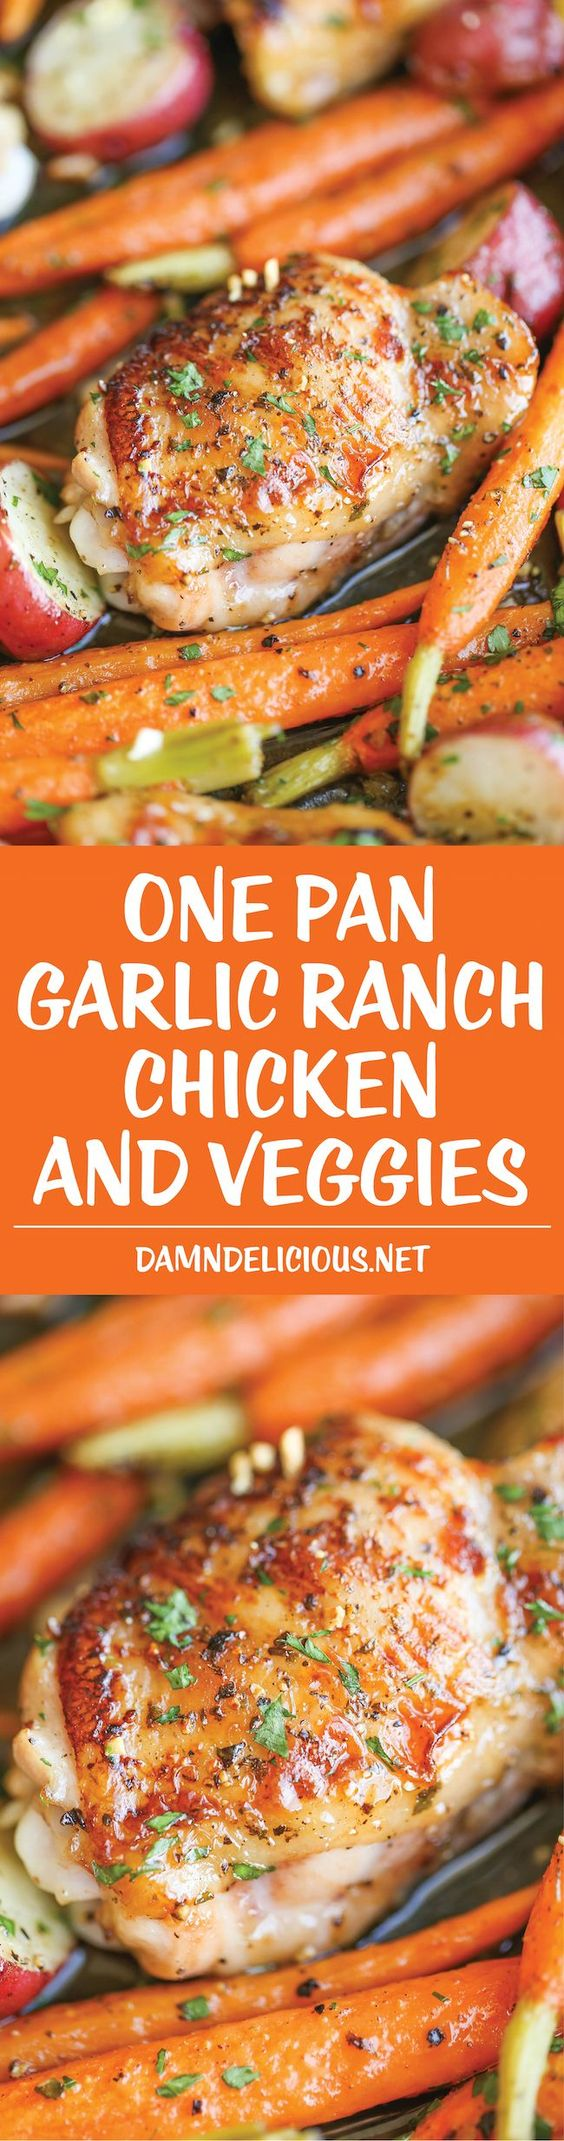 One Pan Garlic Ranch Chicken and Veggies – Crisp-tender chicken baked to absolute perfection with roasted carrots and potatoes – all cooked in a single pan!